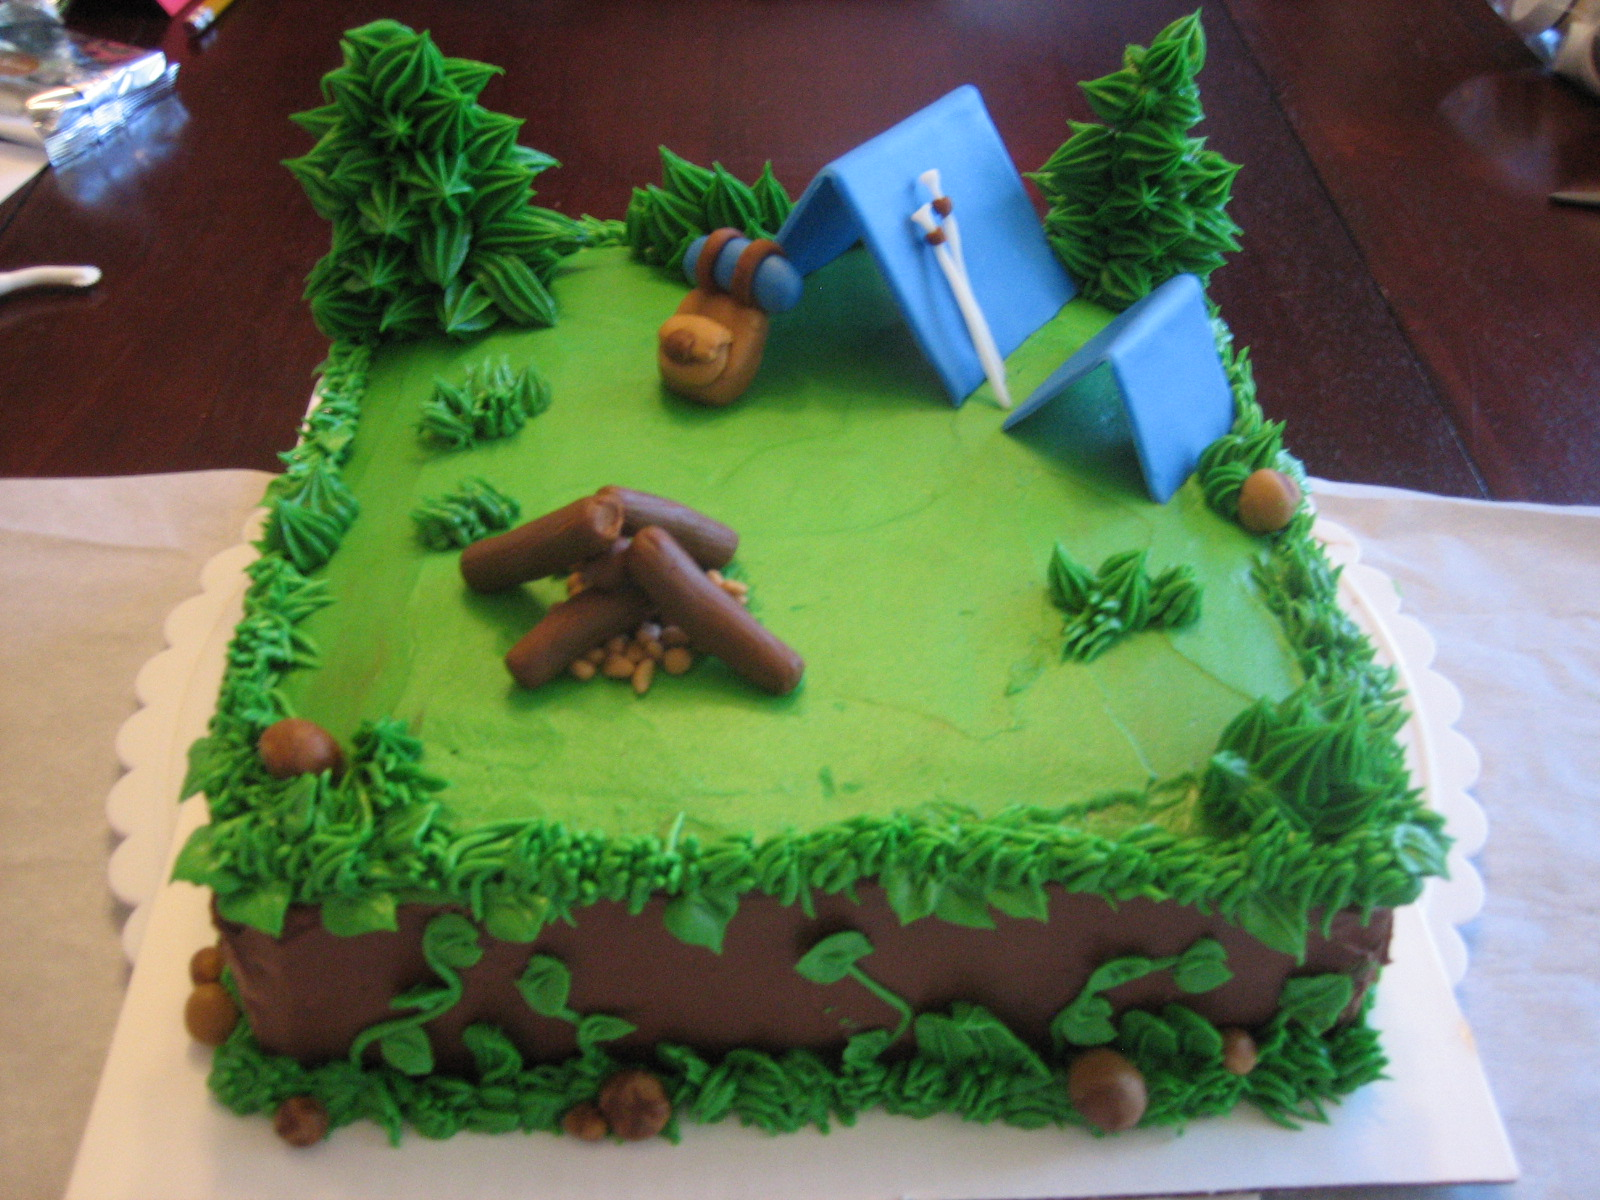 Camping Themed Cake Decorations